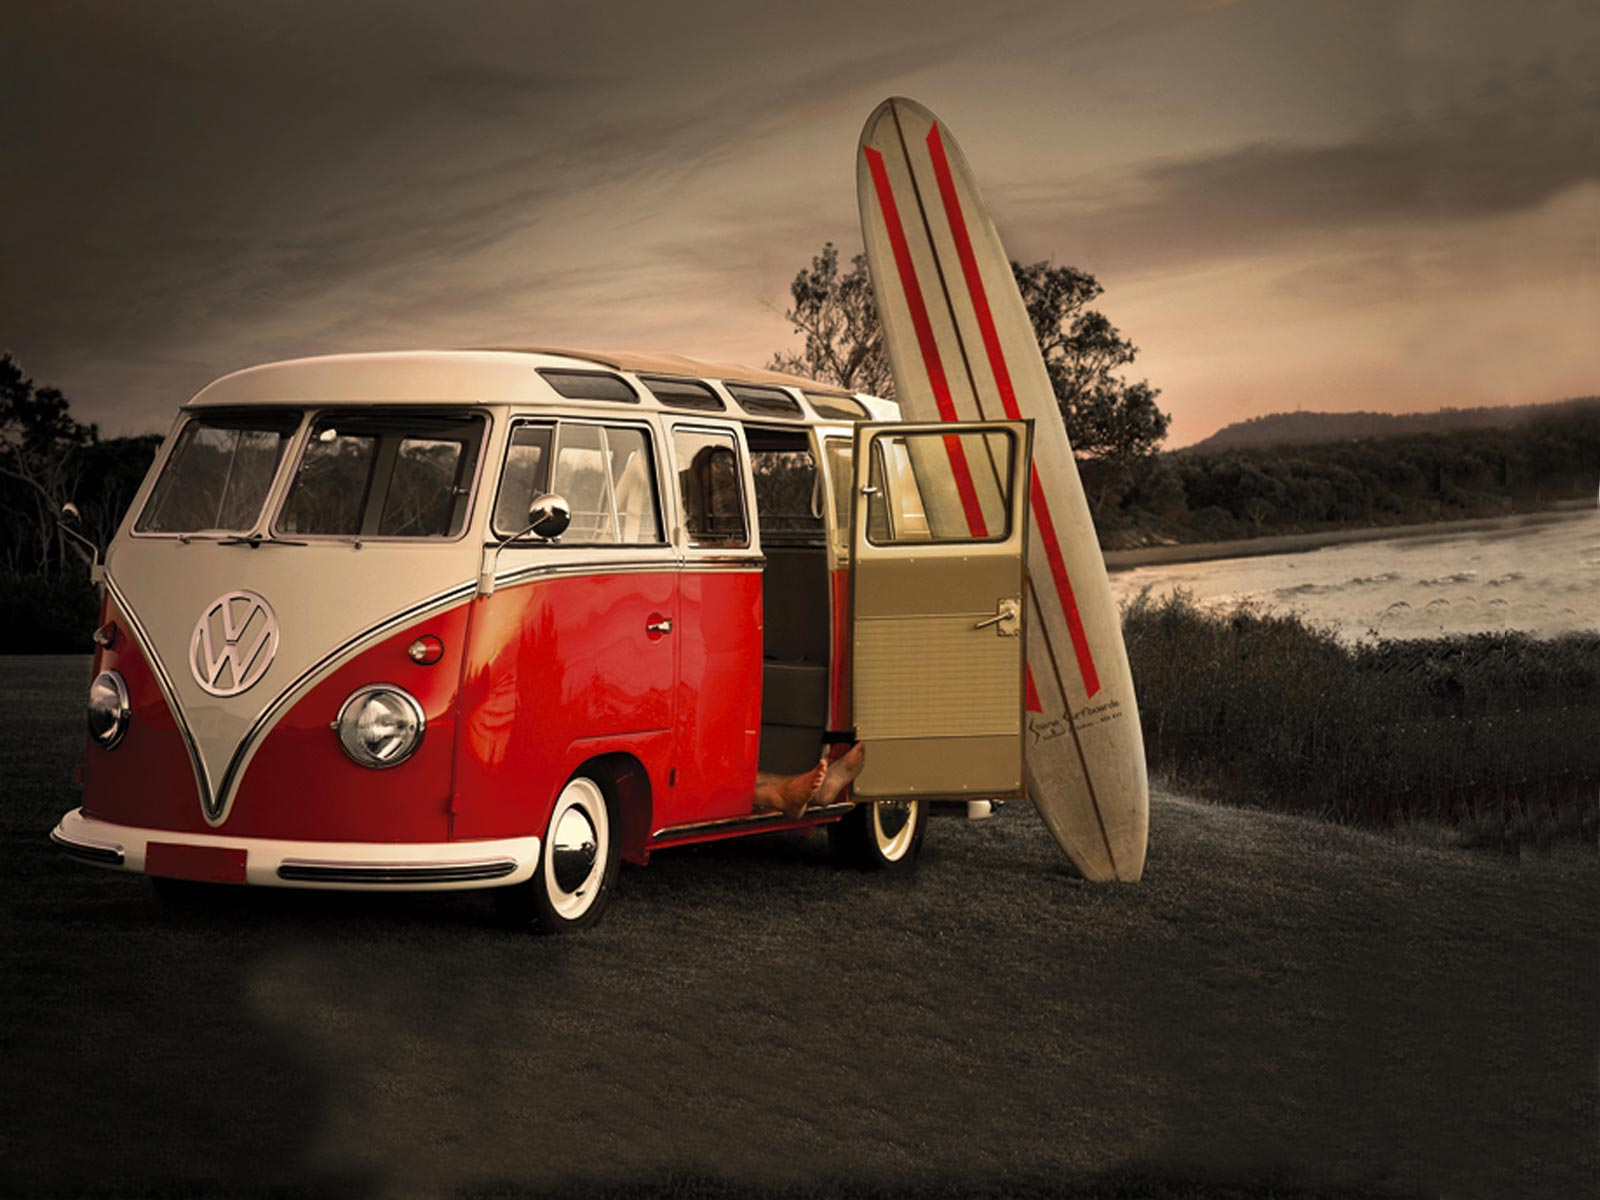 Surf And Old Vw Wallpaper Iphone Vivance